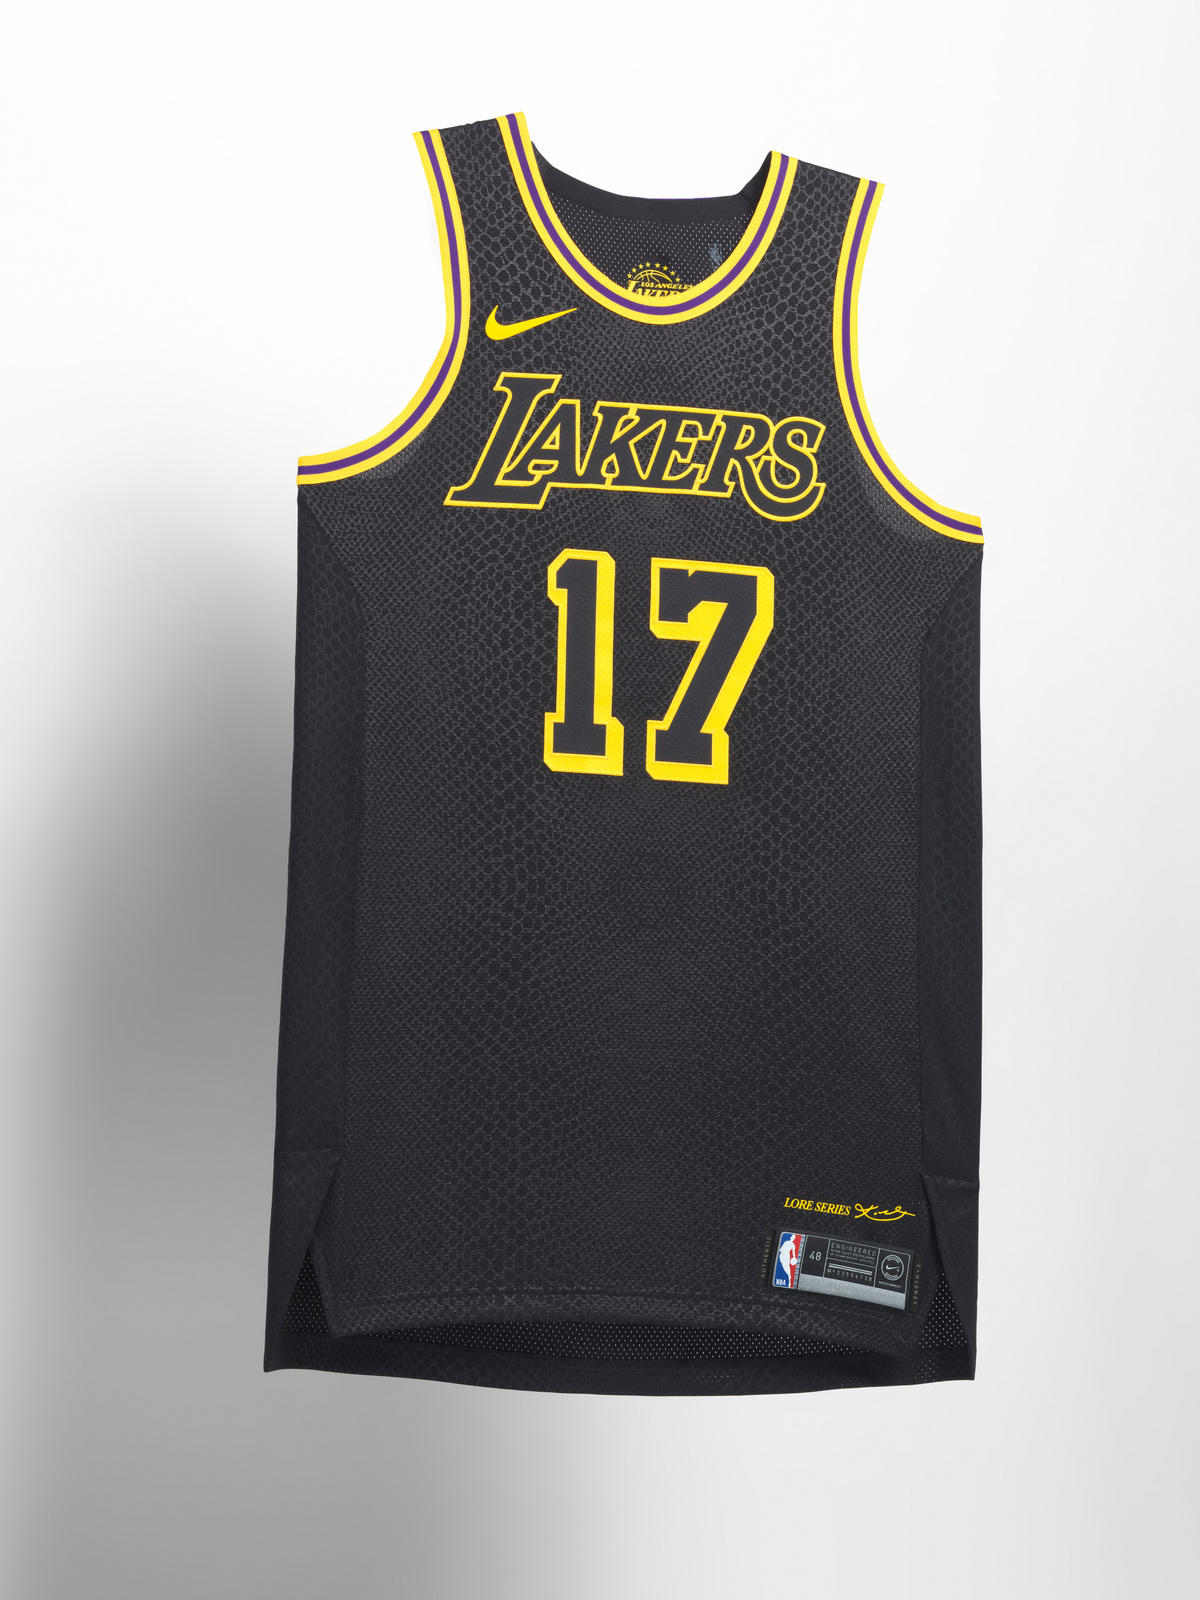 a14258a78 Nike NBA City Edition Uniform 39. Los Angeles Lakers